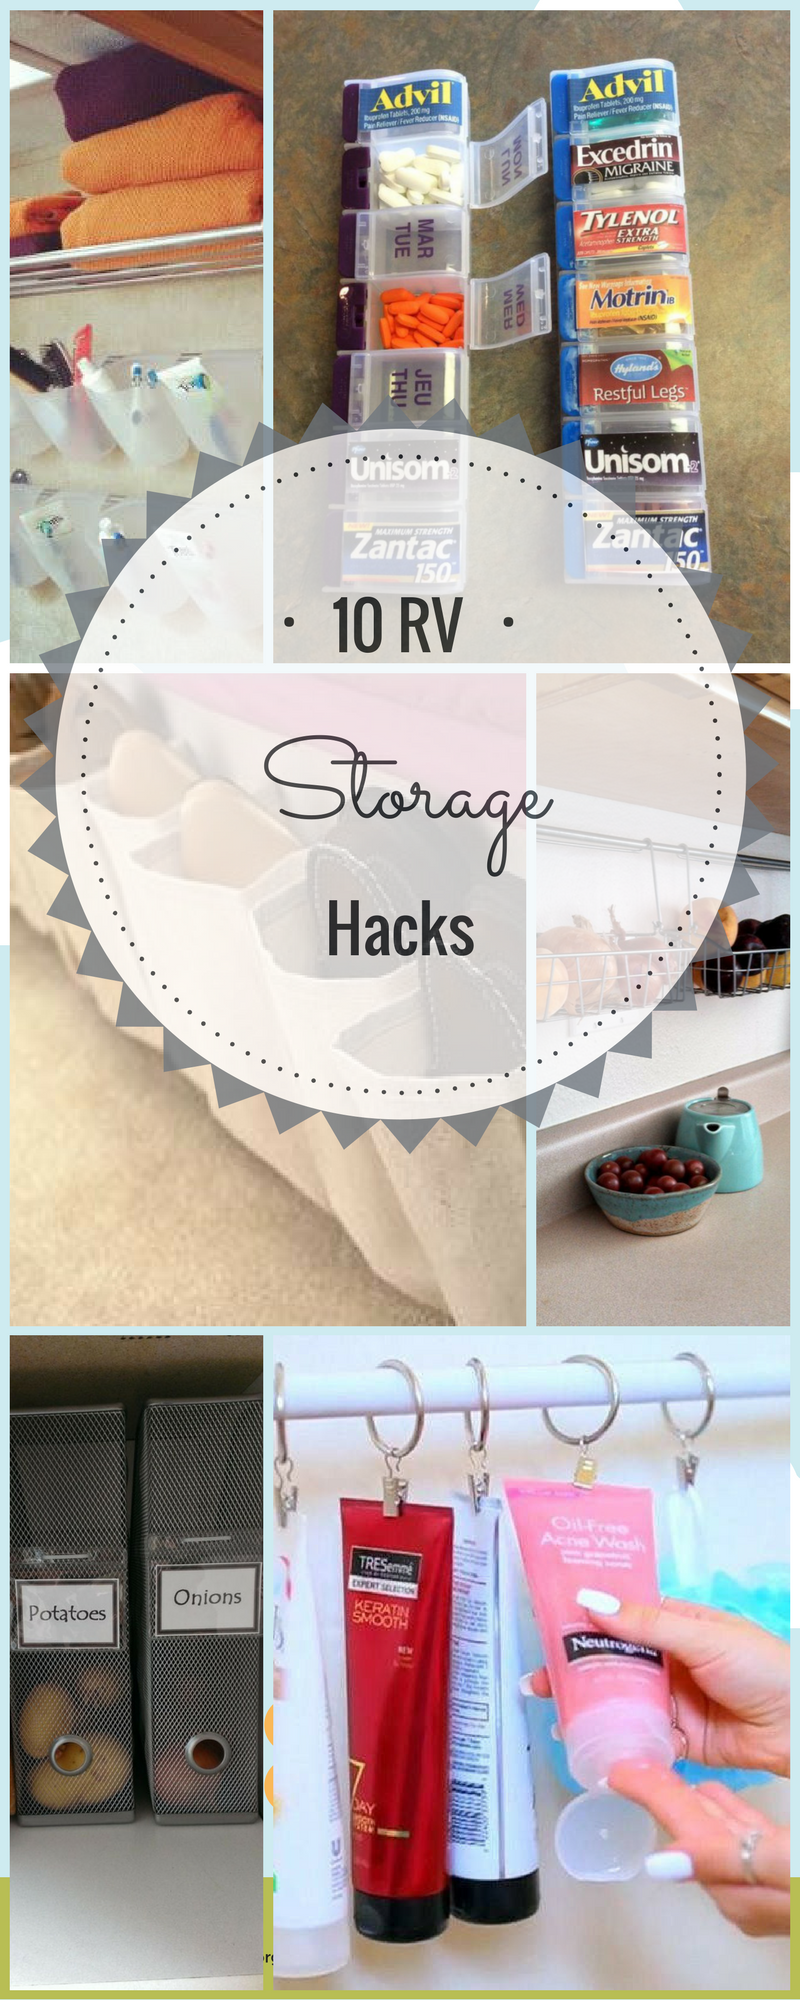 10-rv-storage-tips